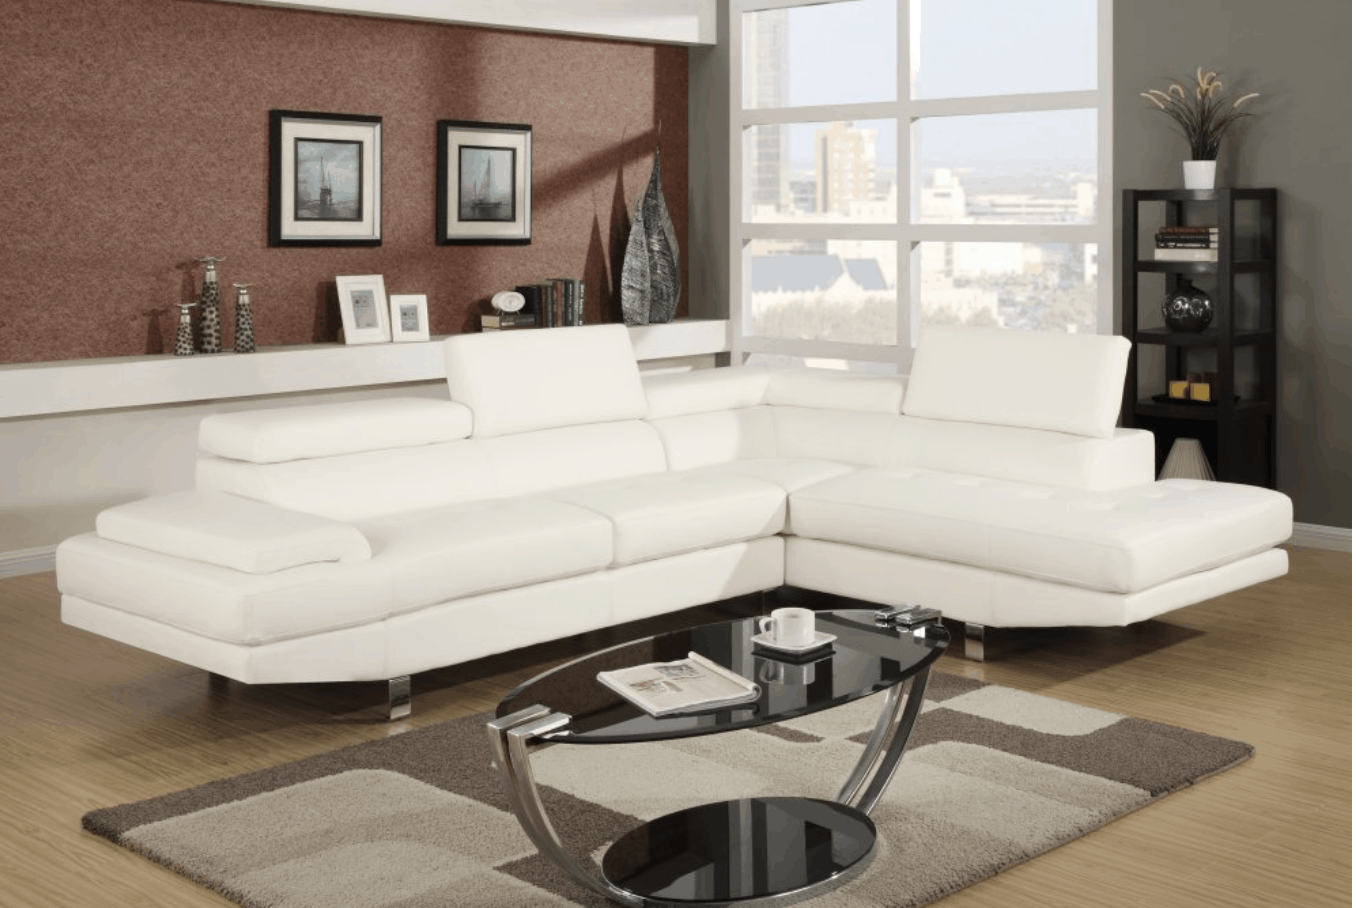 Compact Modern Sectional Sofa